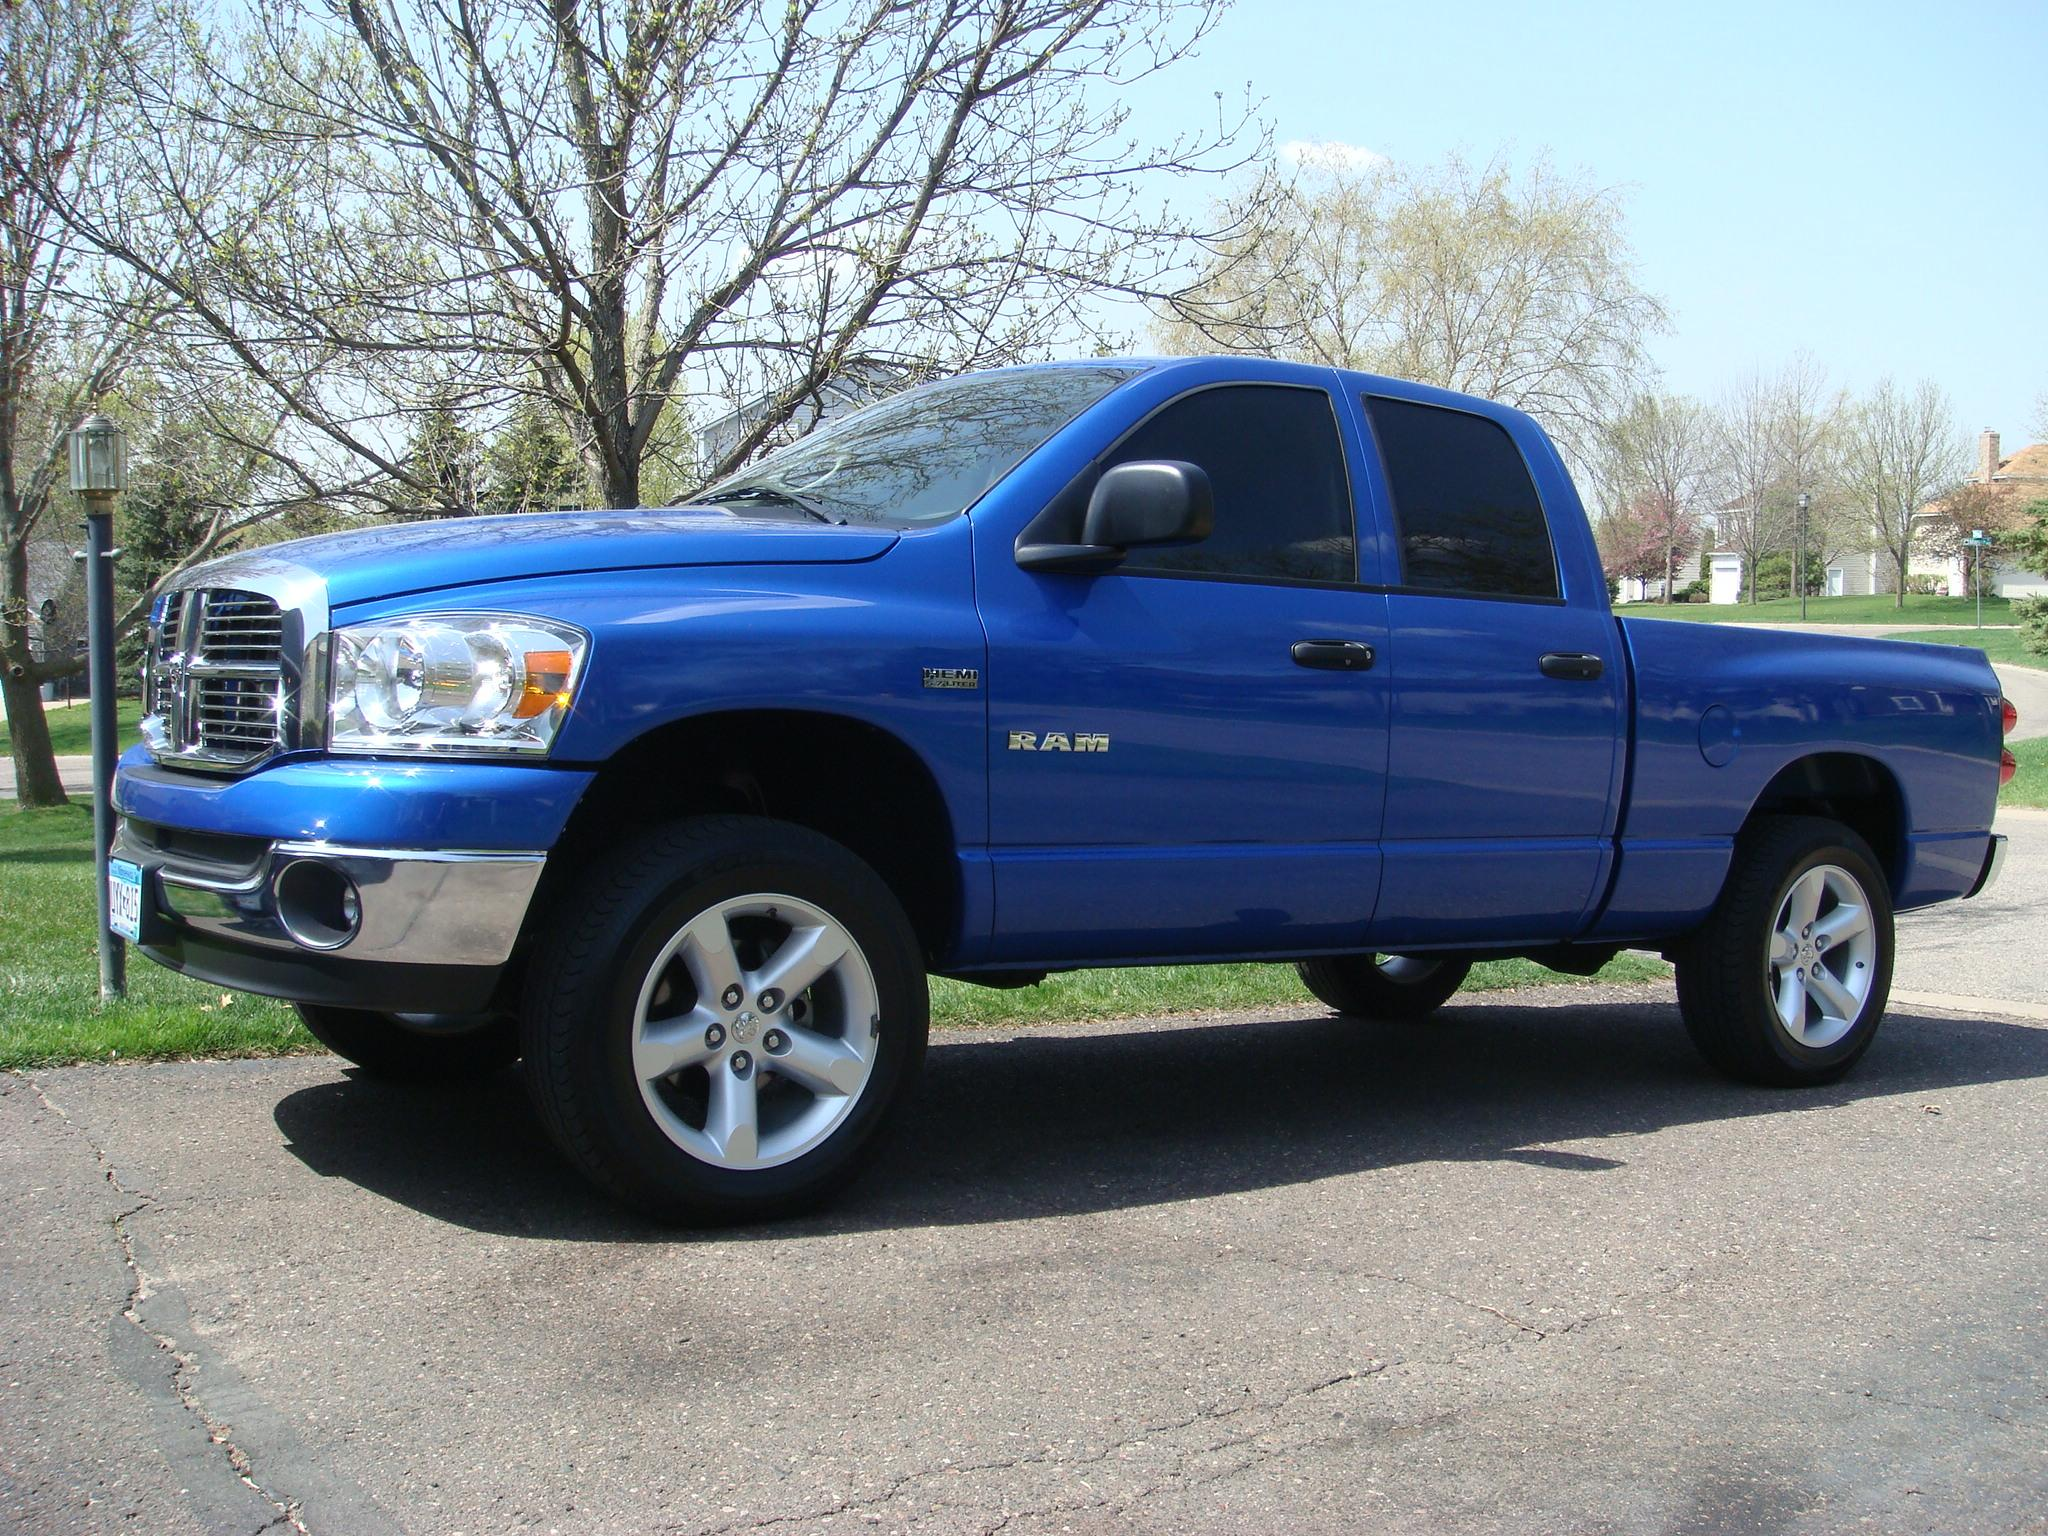 brasshead 2008 dodge ram 1500 quad cabslt pickup 4d 6 1 4 ft specs photos modification info at. Black Bedroom Furniture Sets. Home Design Ideas